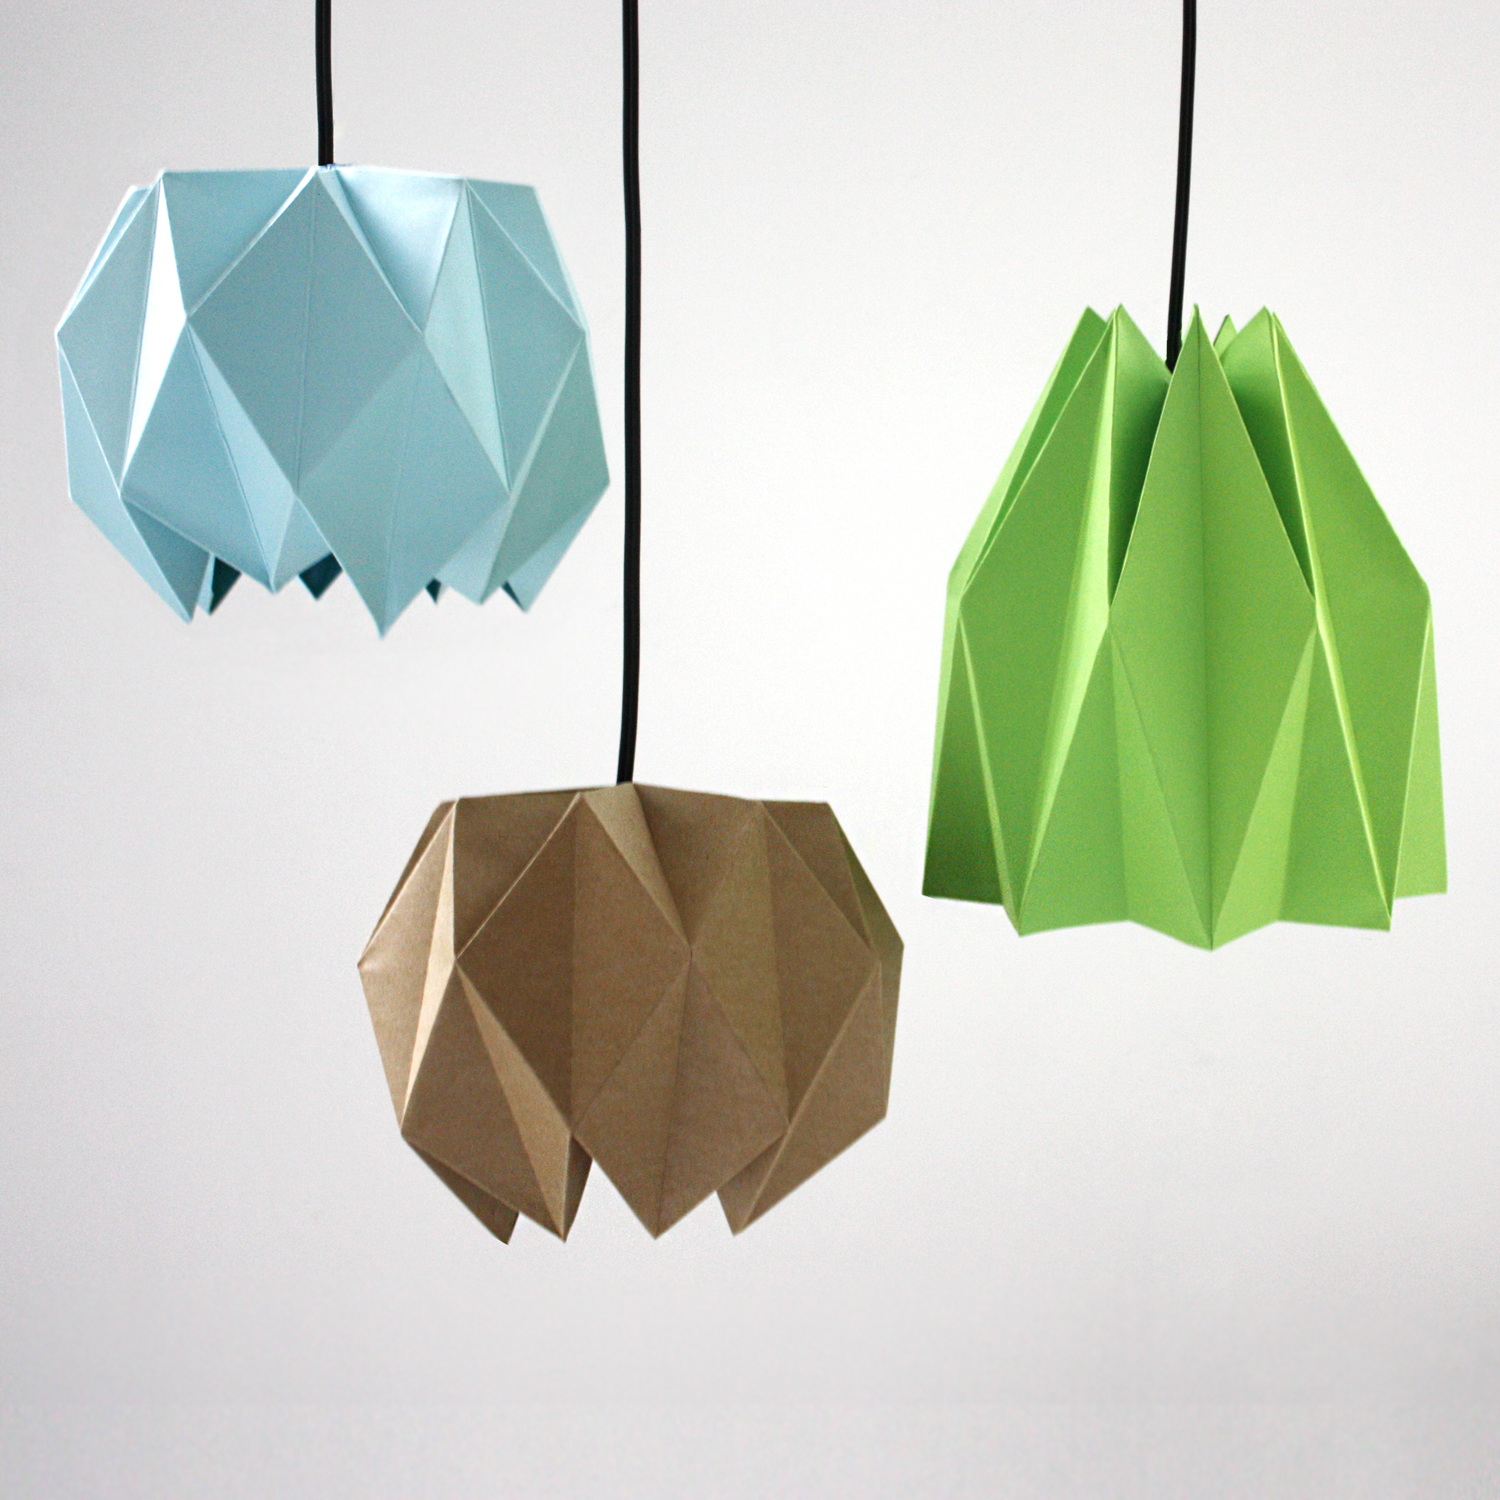 Diy origami lampshade design and paper for How to make a paper design